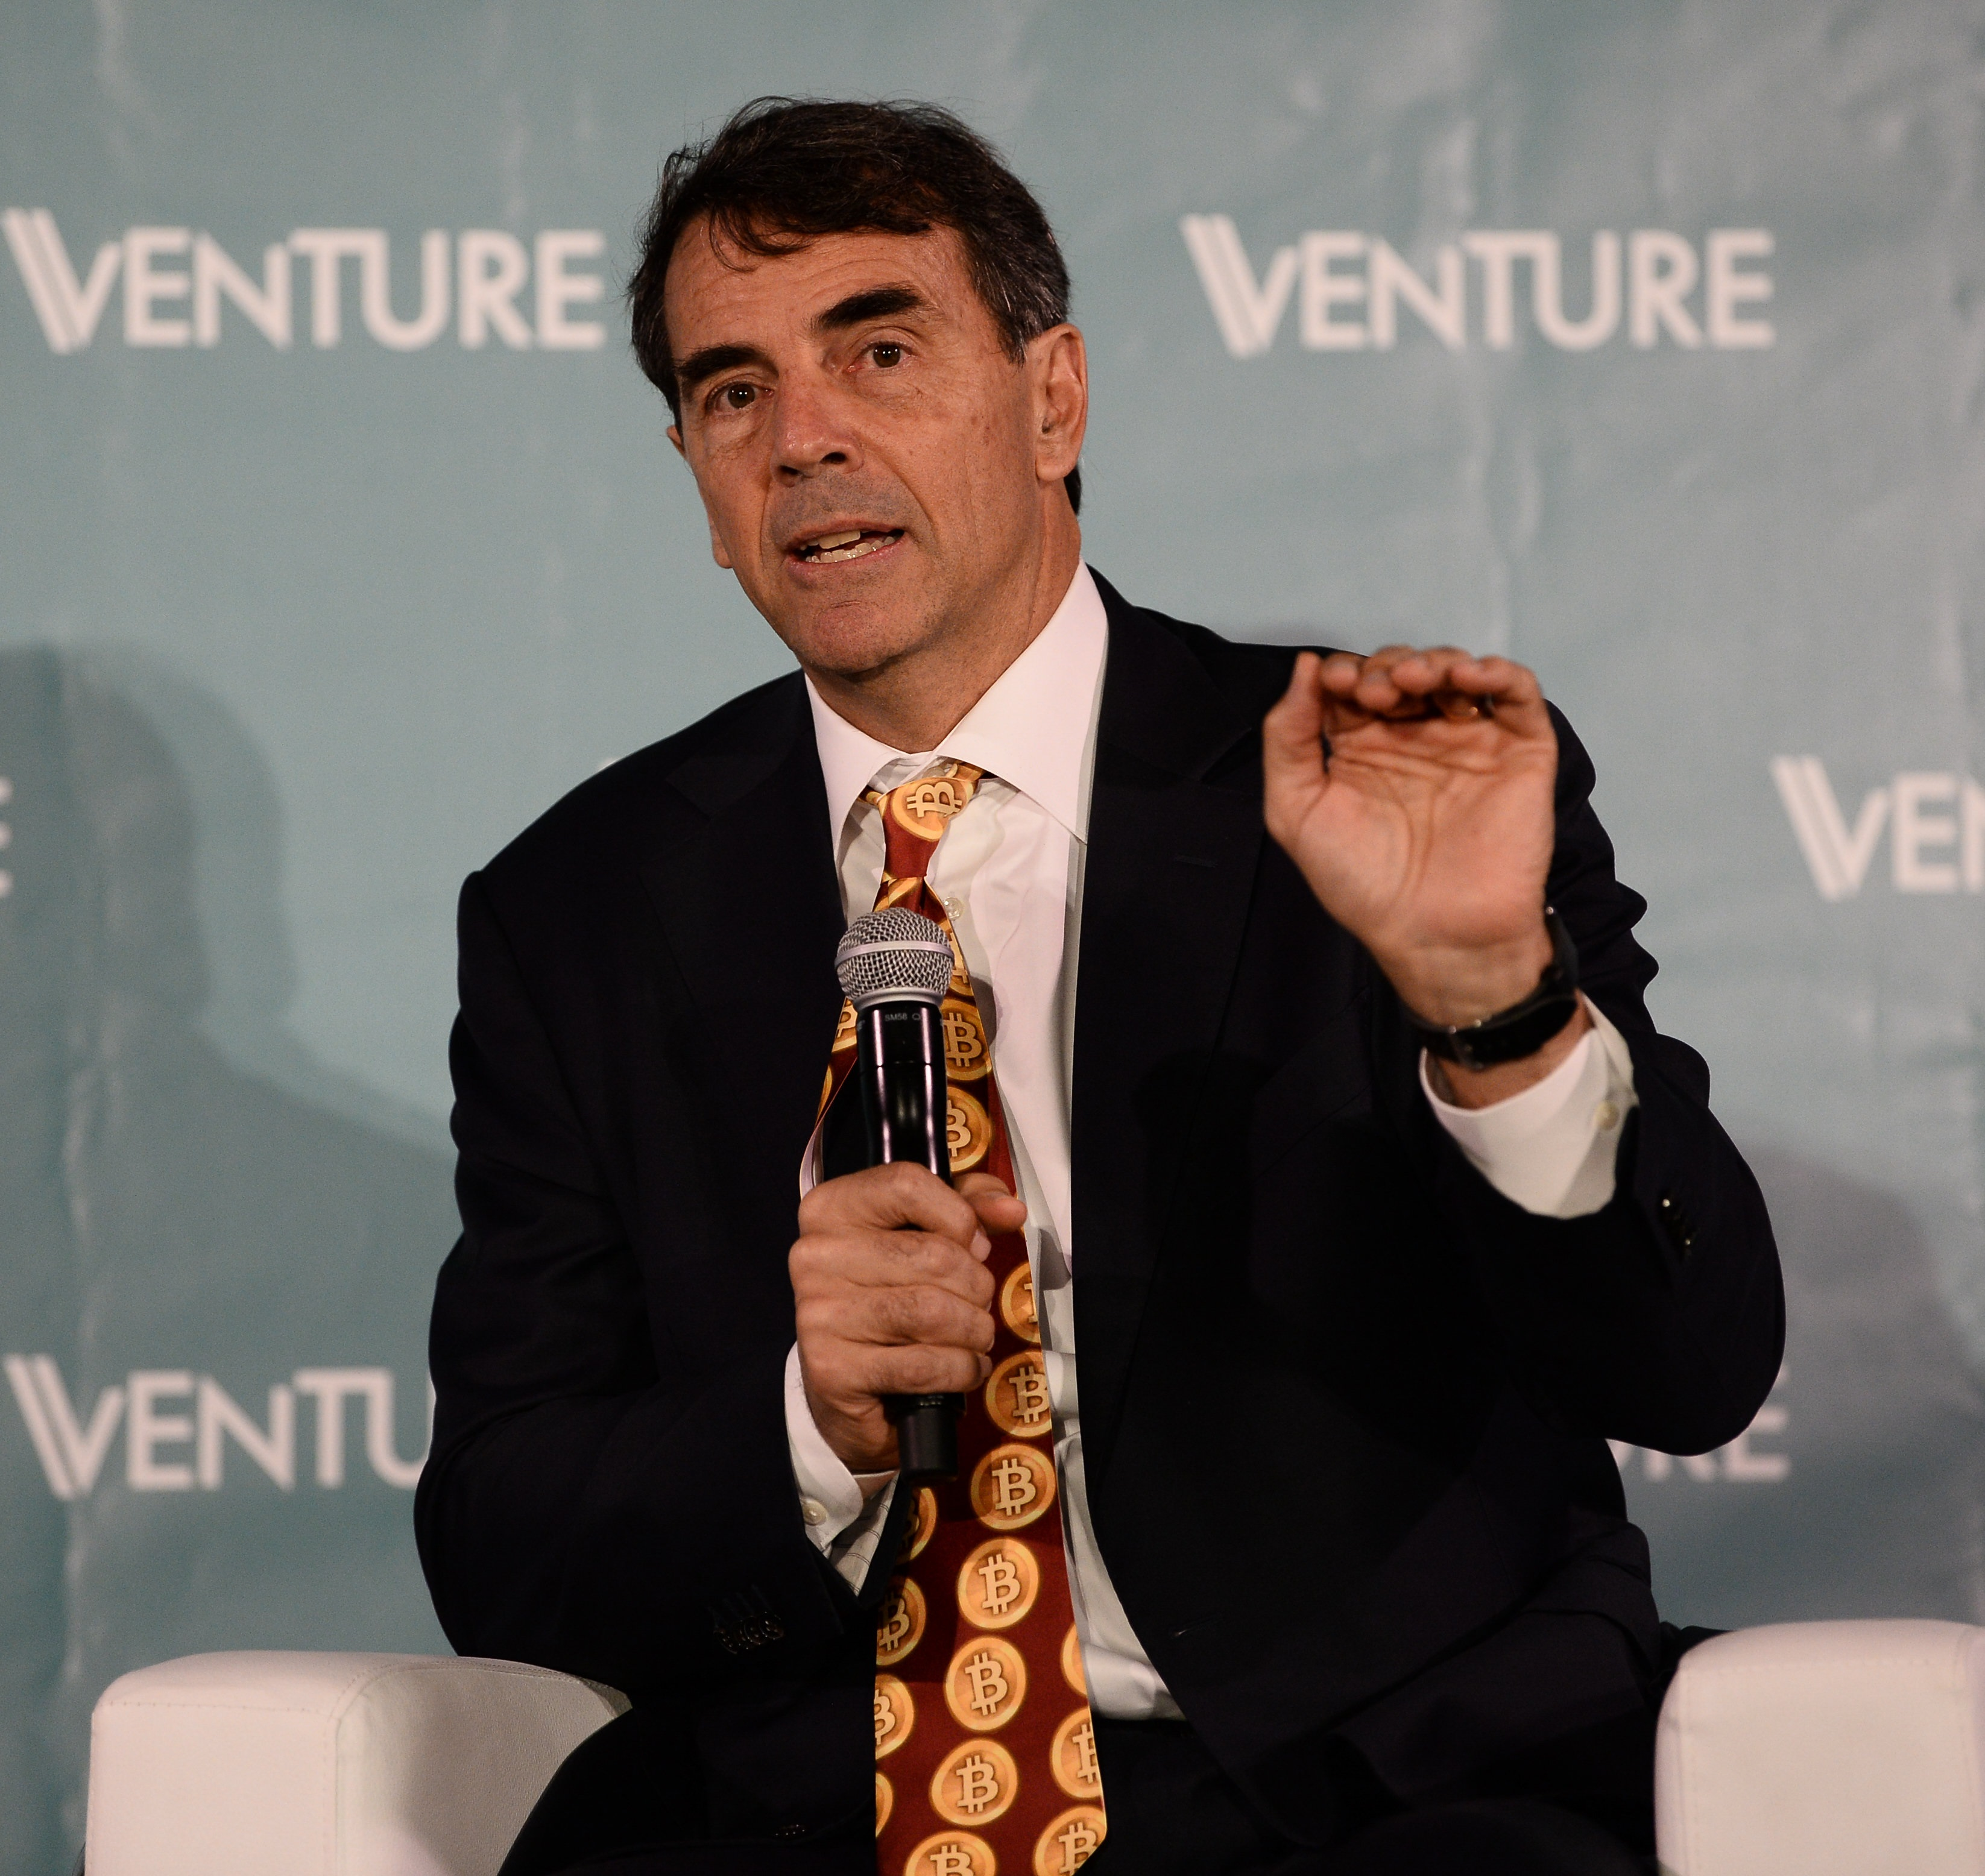 Tim Draper, DFJ, at Venture Summit 2017 Photo by Diarmuid Greene/Web Summit via Sportsfile